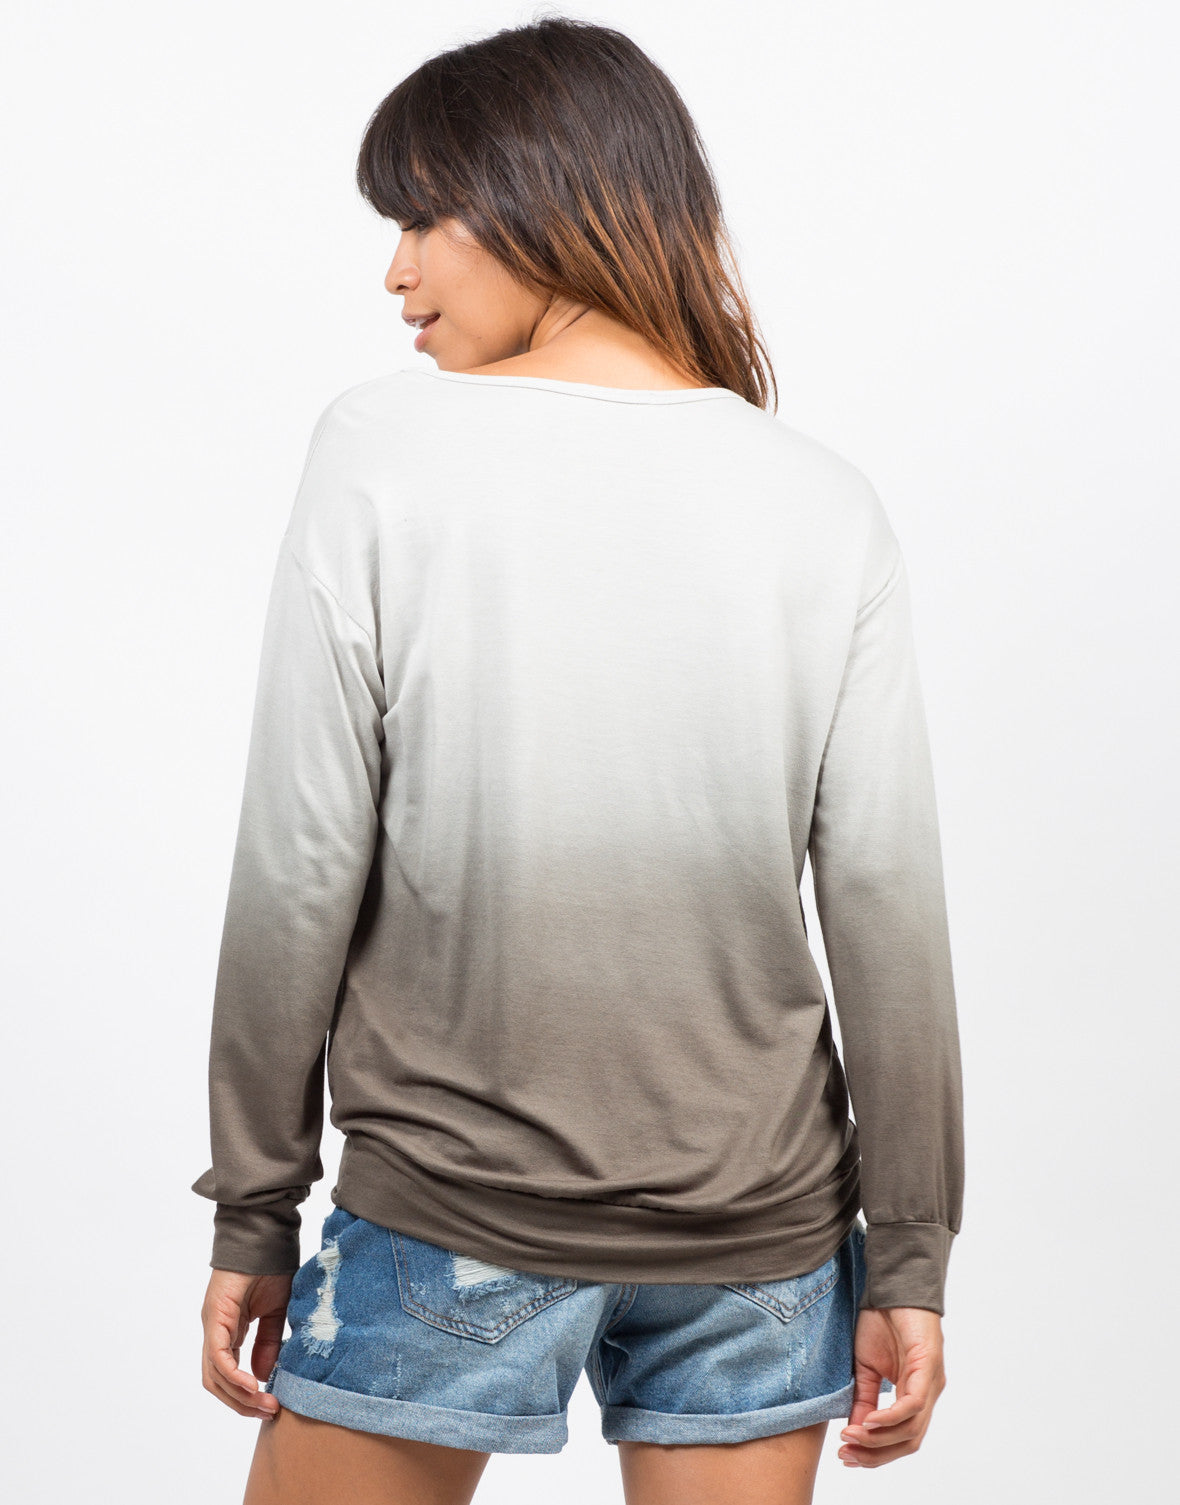 Back View of Dip Dye Tunic Sweater